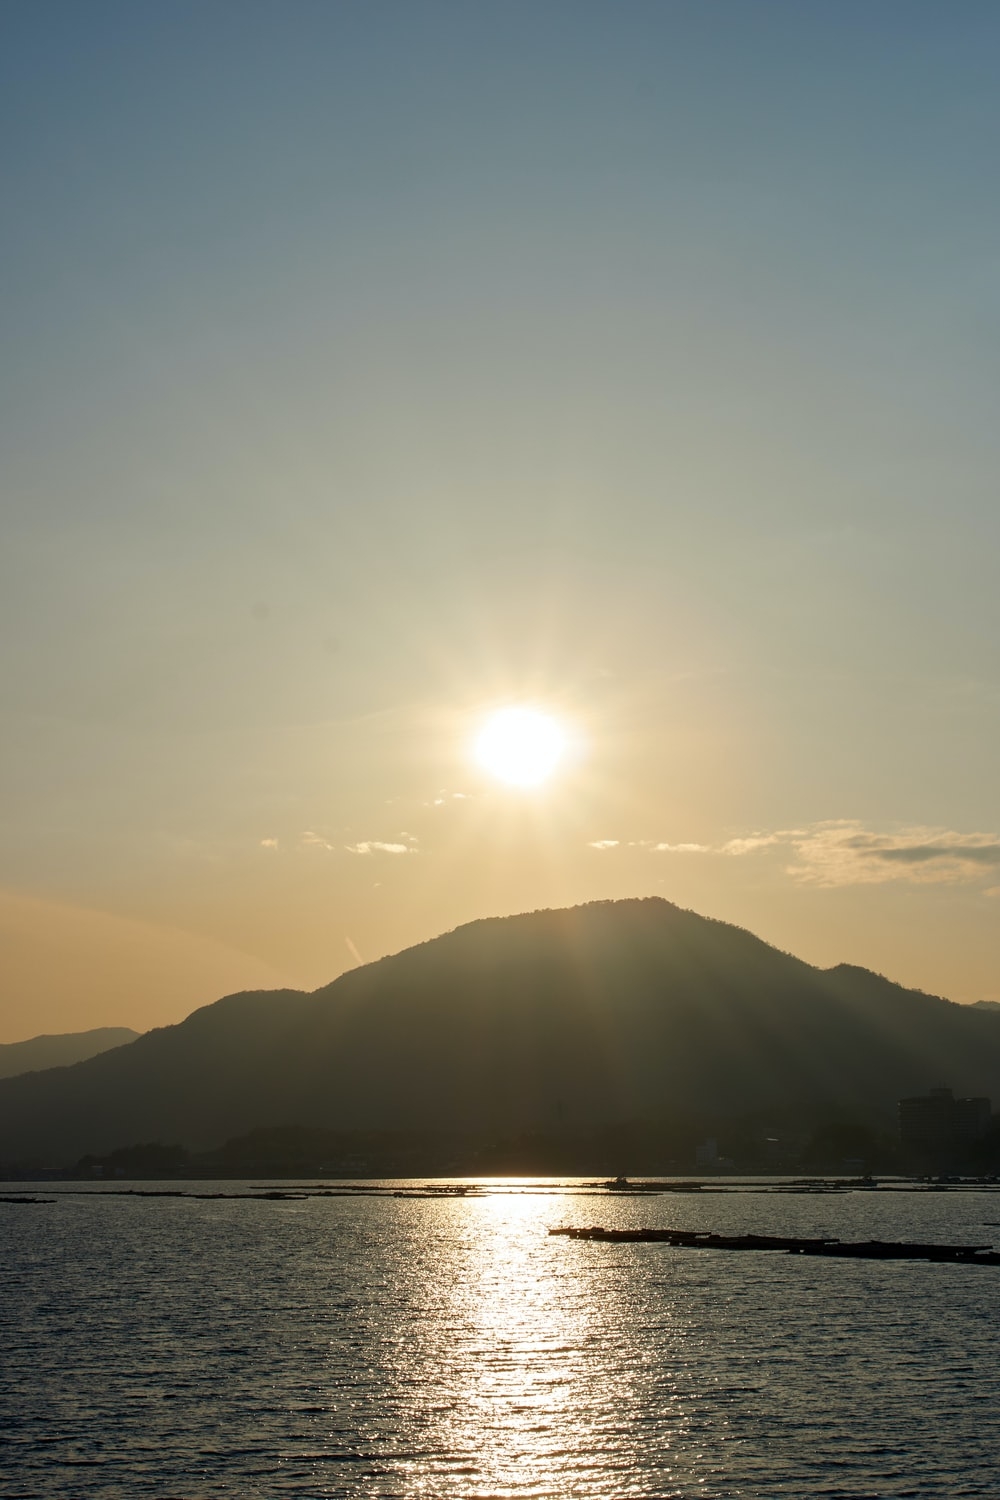 sun over the mountains and body of water